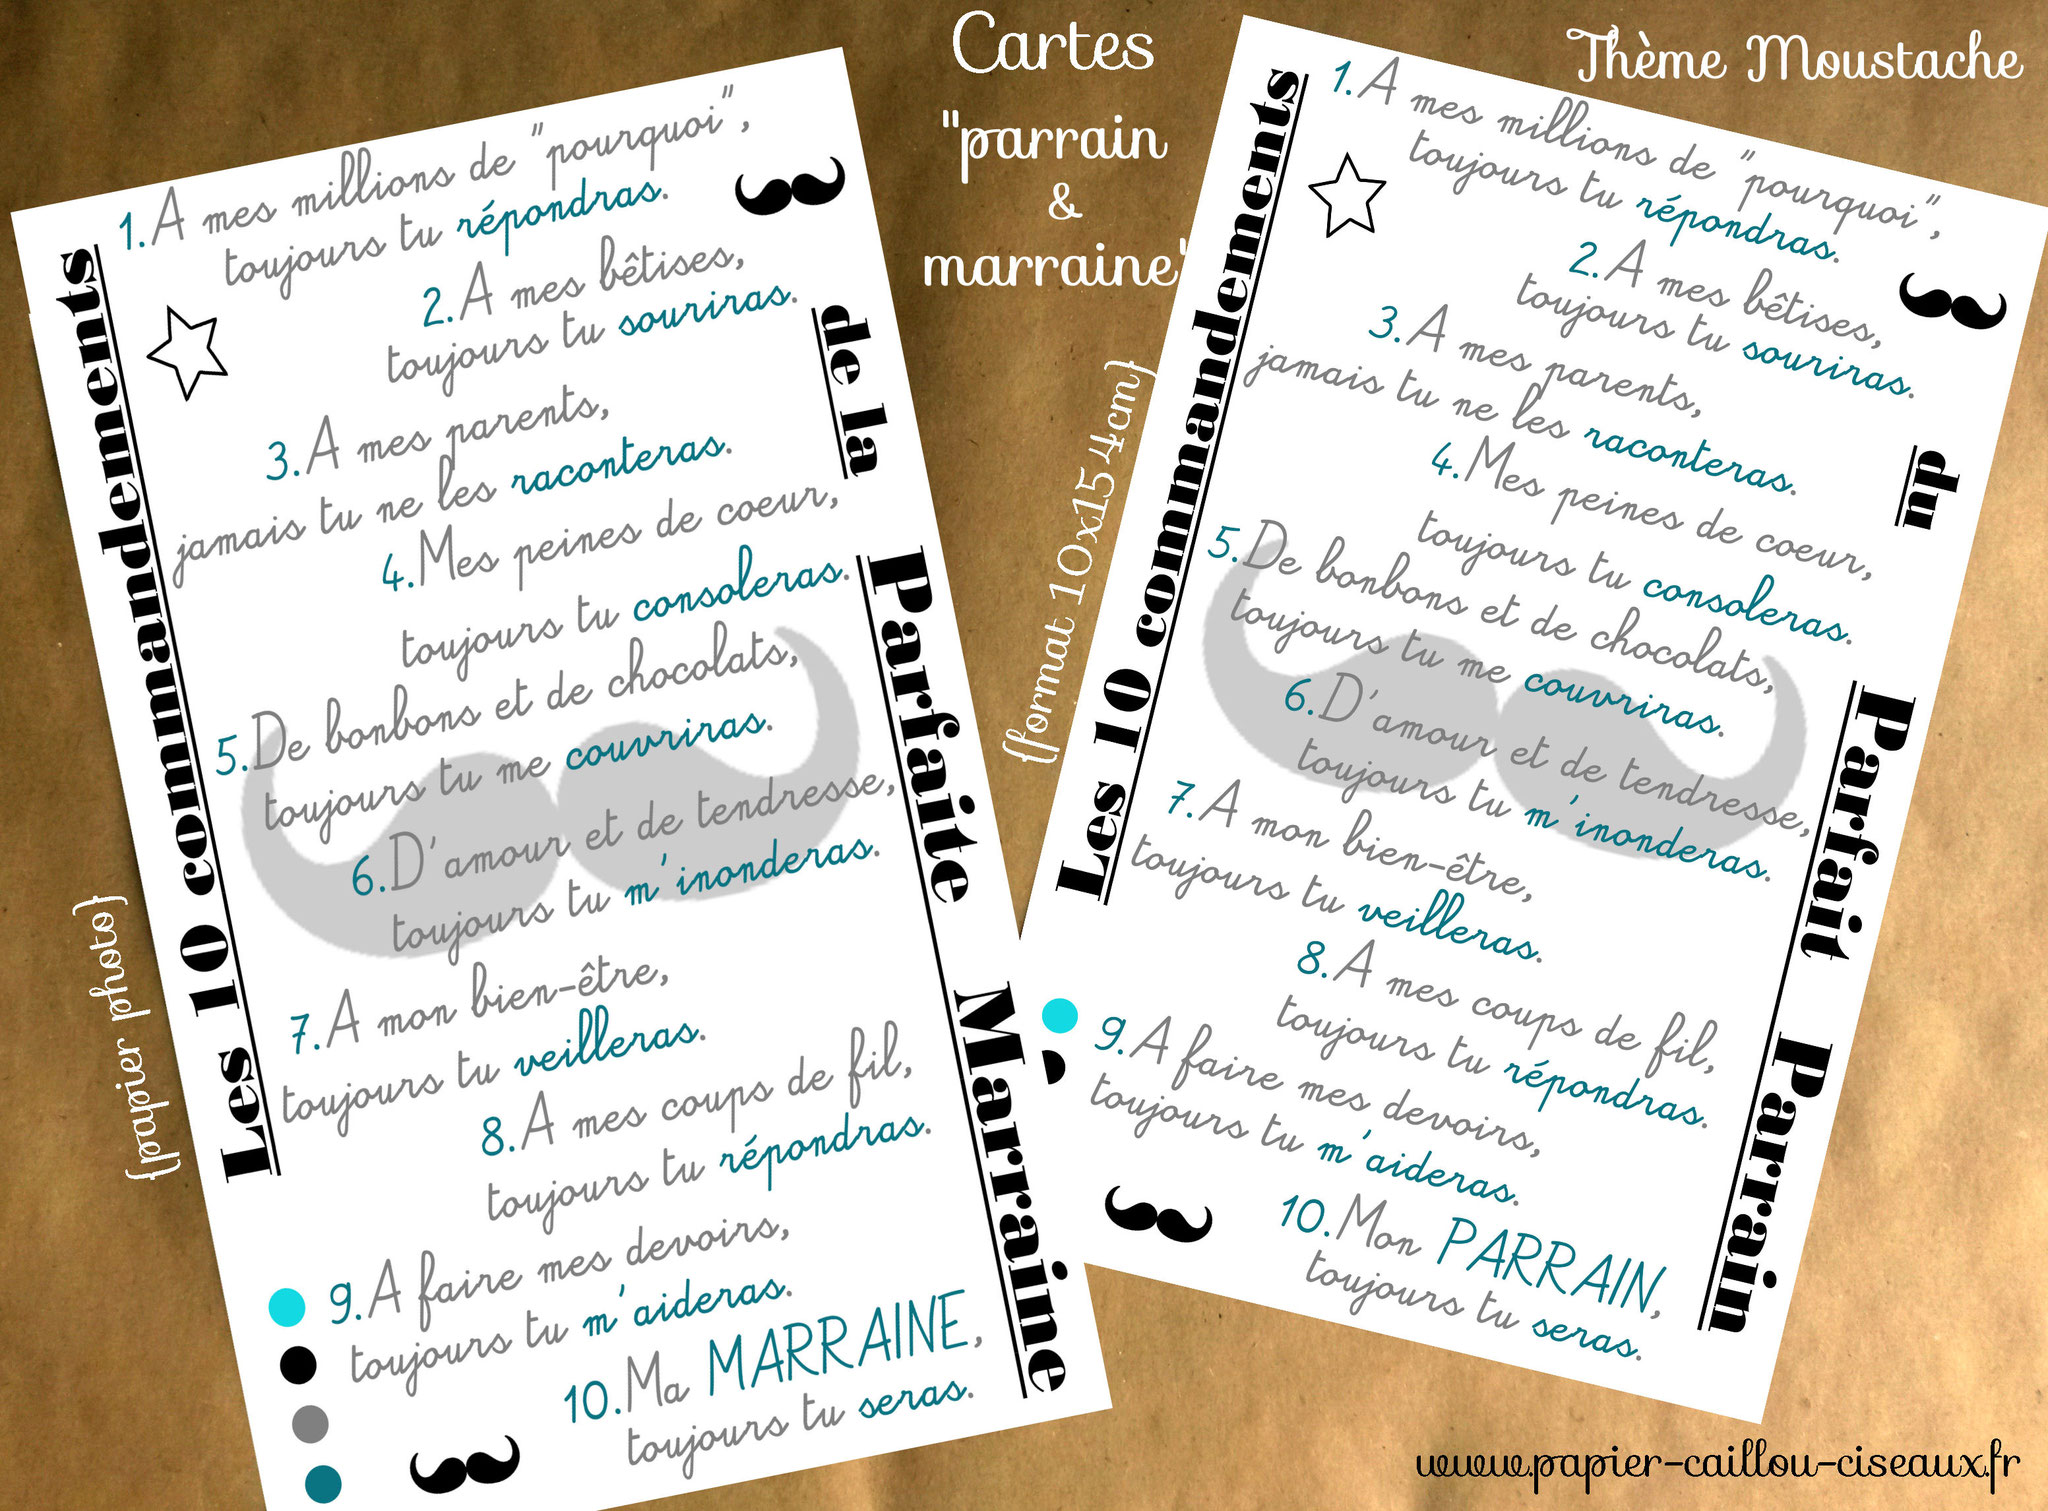 Cartes parrain marraine moustache